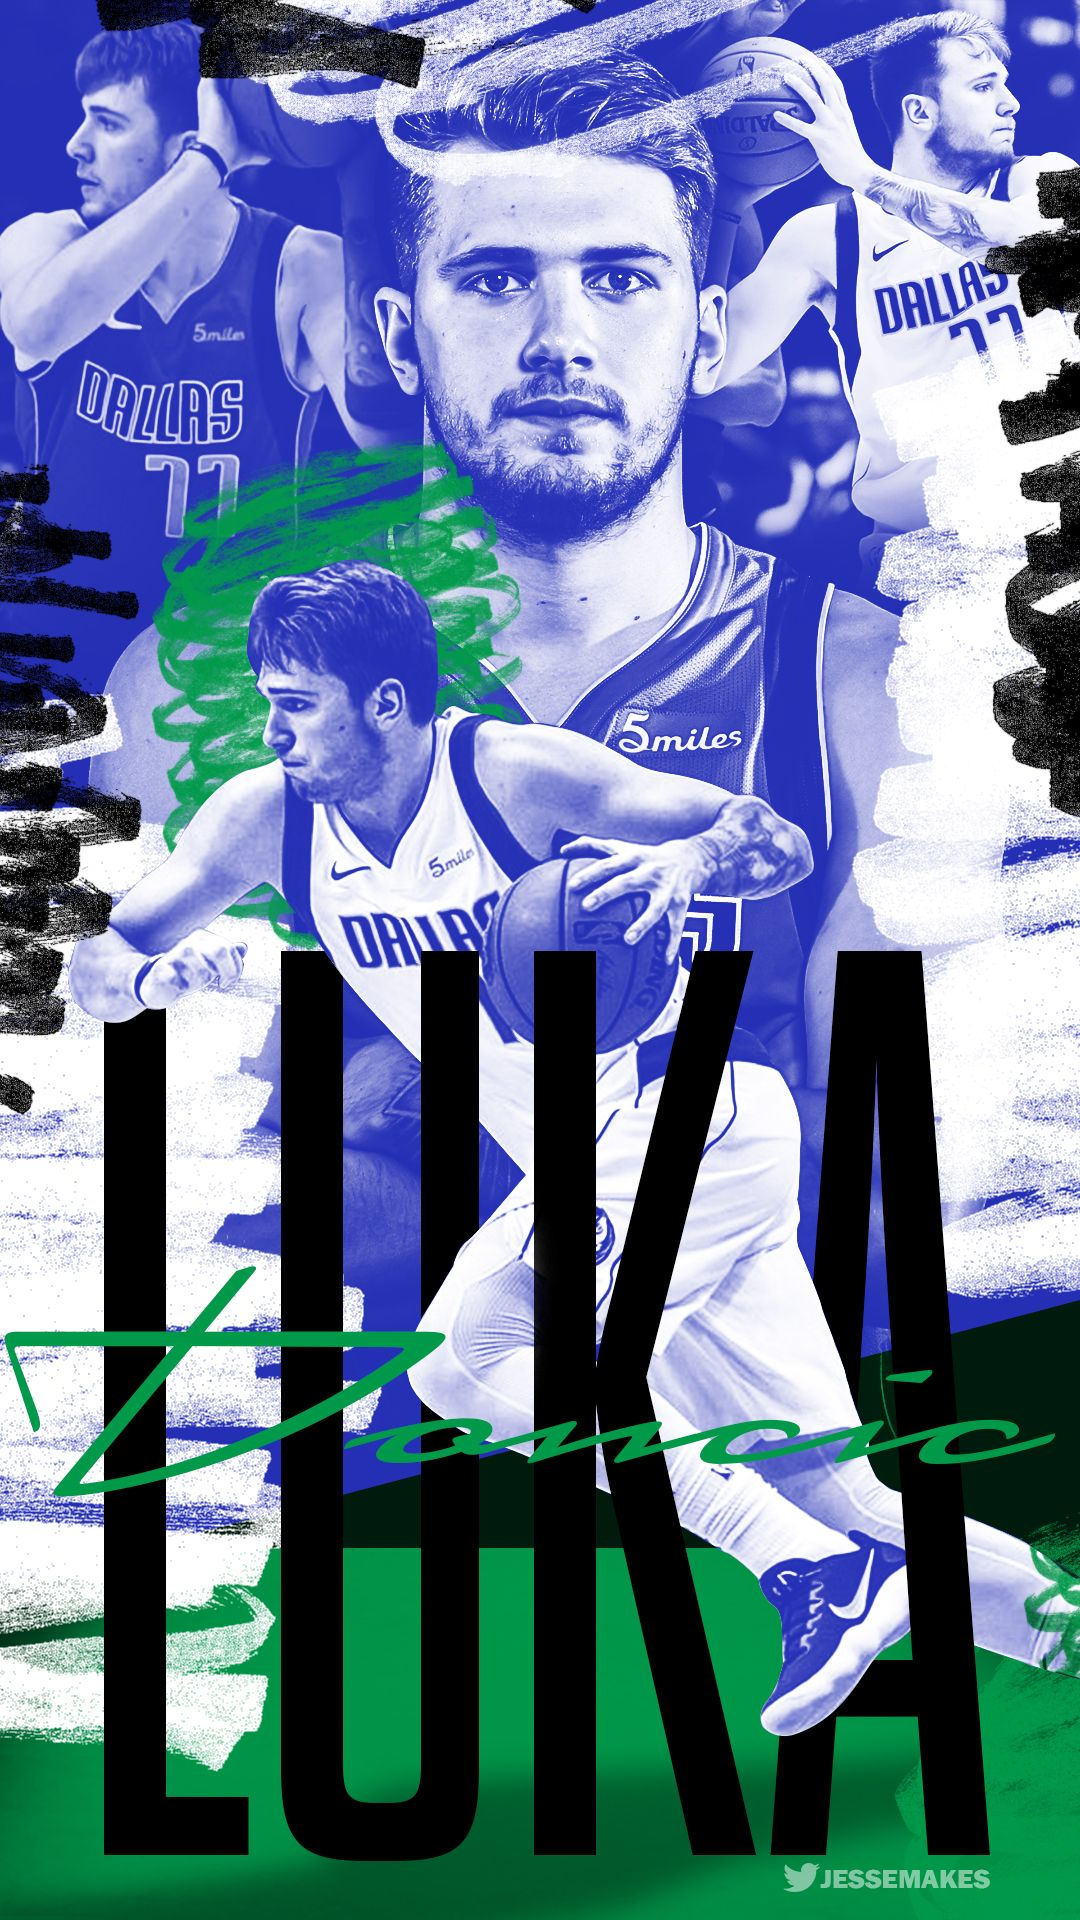 70 Best Mffl Mavs Fan For Life Images In 2020 Dallas Mavericks Mavericks Dirk Nowitzki